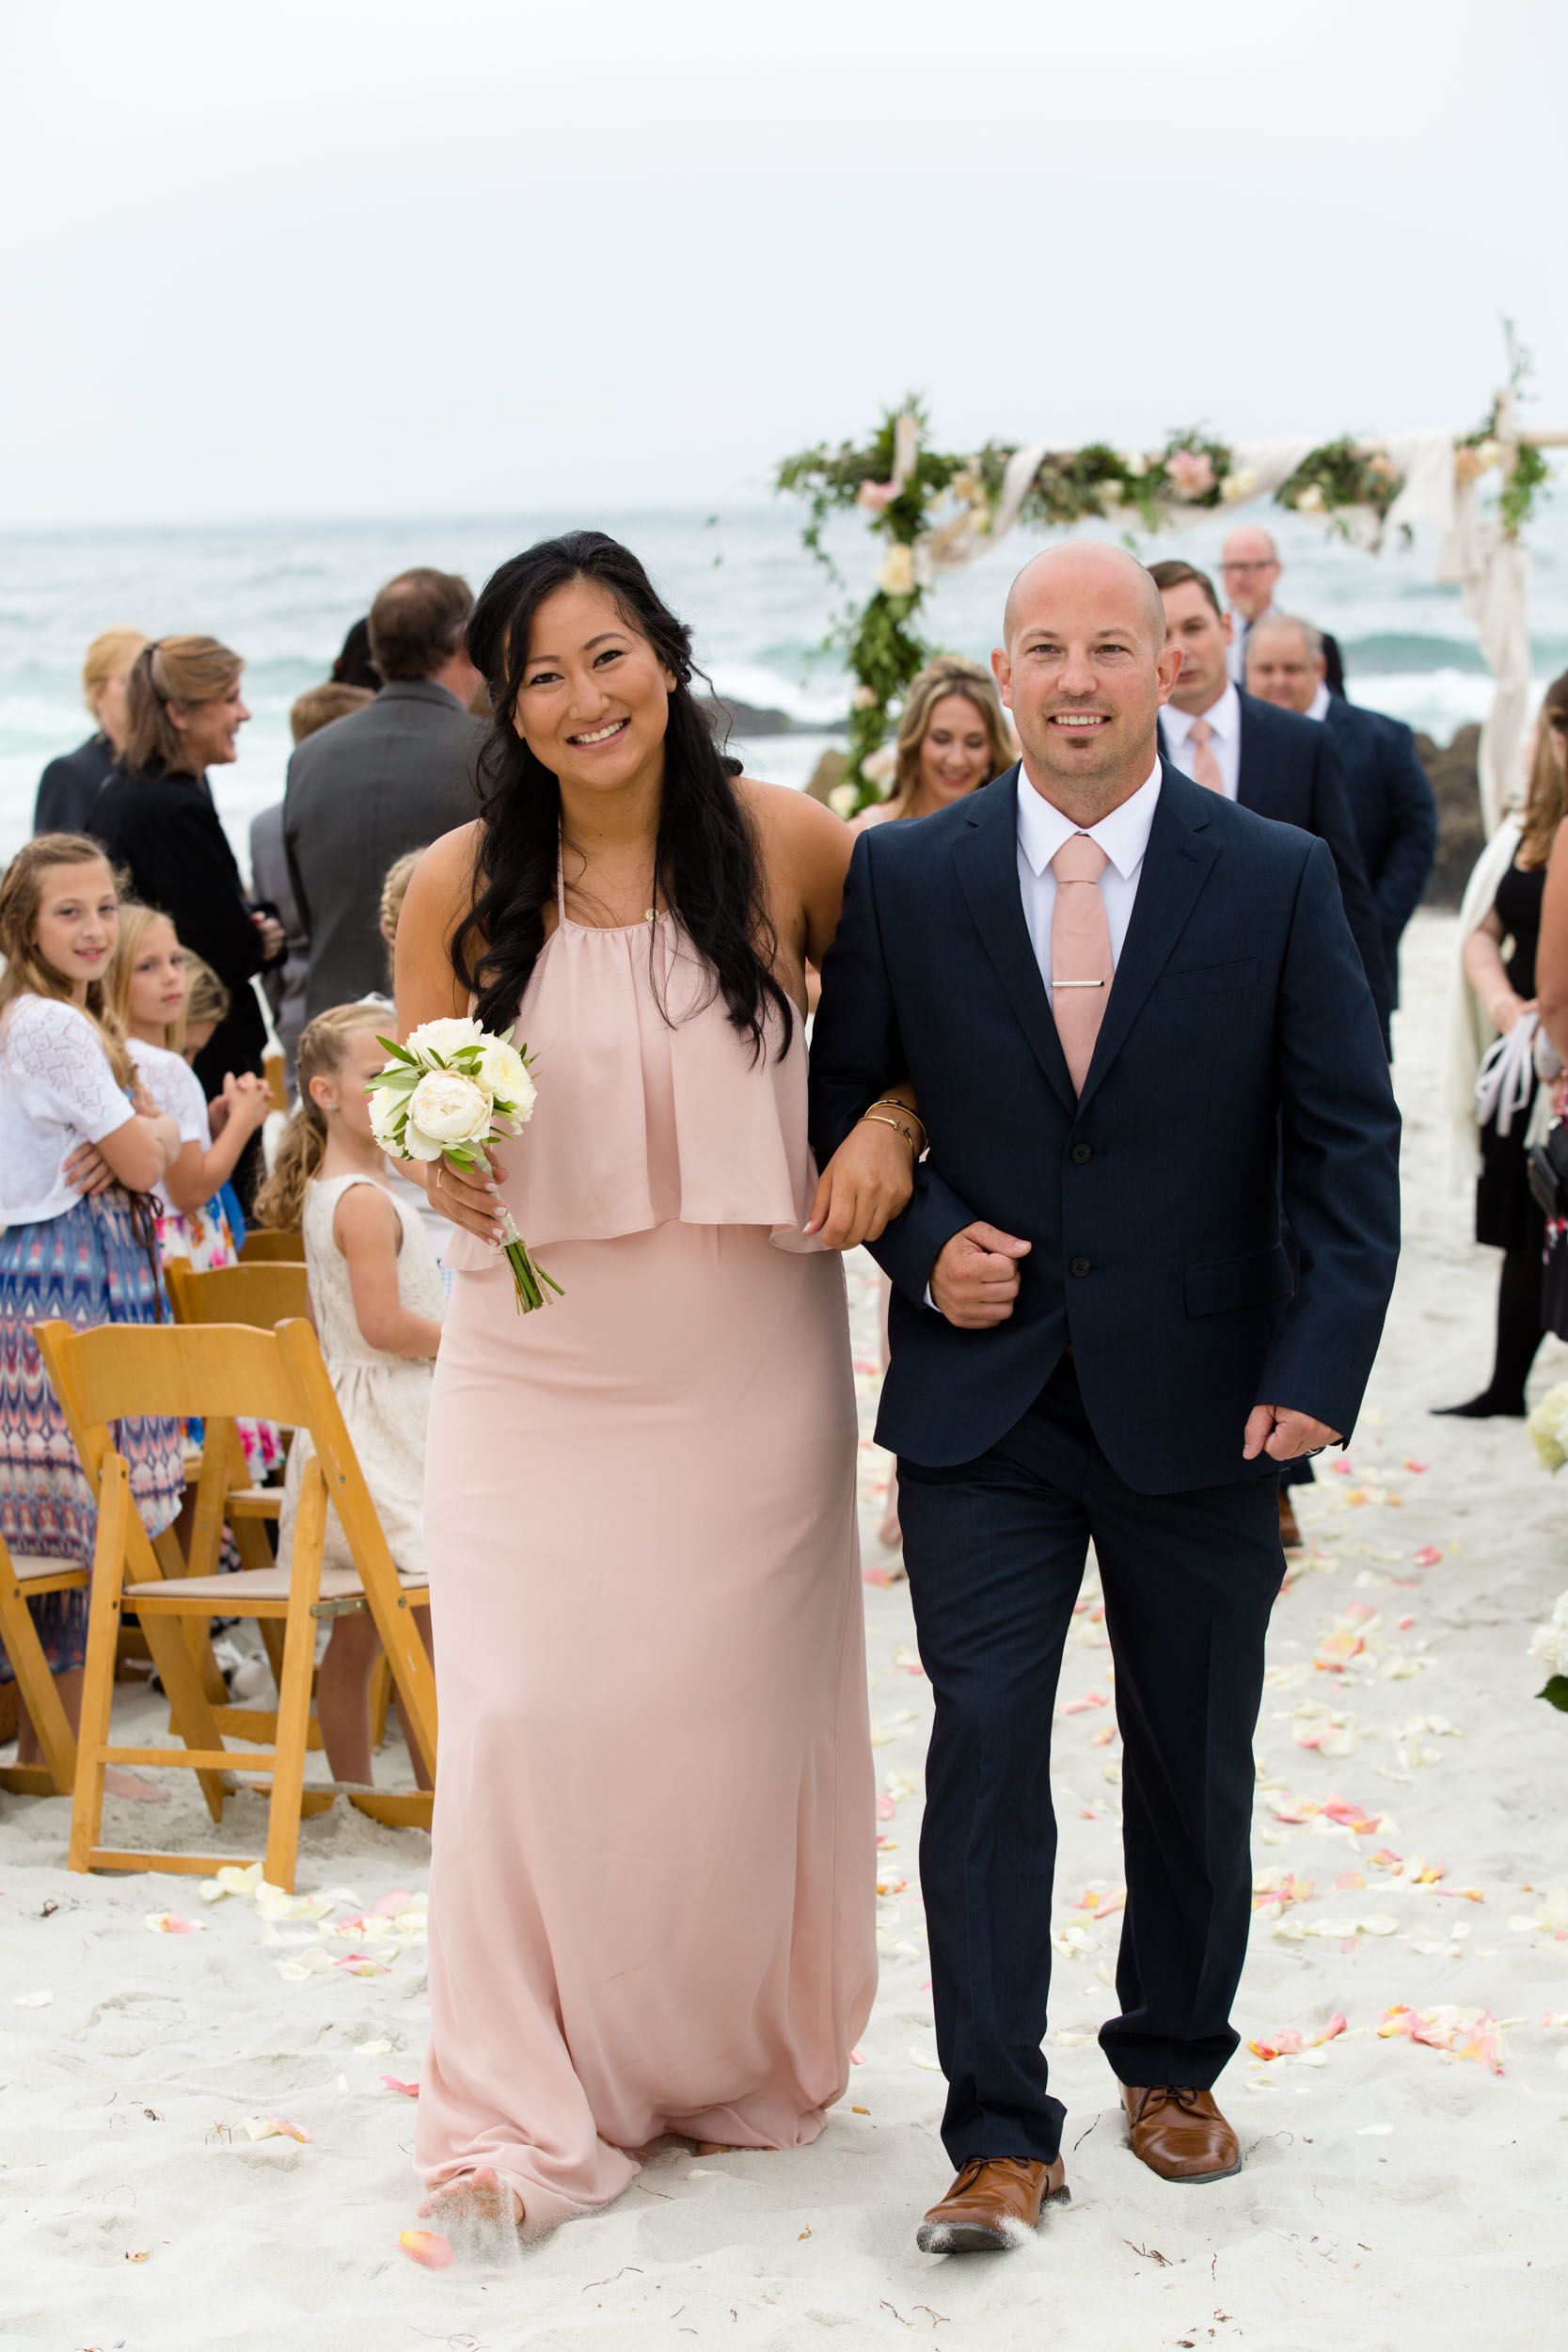 Our Wedding-352